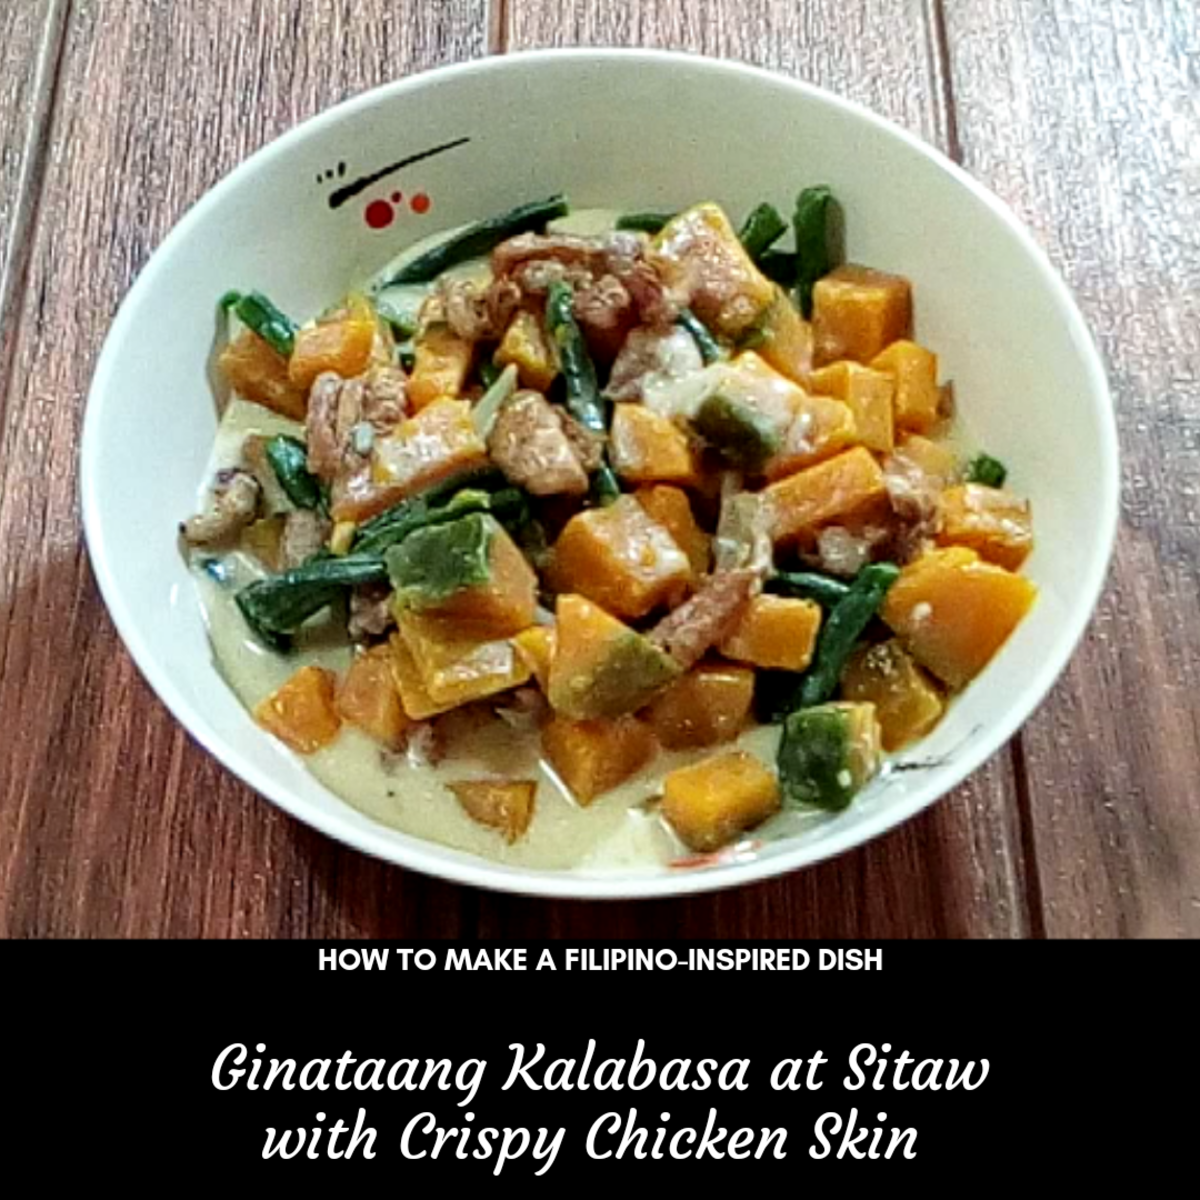 how to make ginataang kalabasa at sitaw with crispy chicken skin - a Filipino-inspired dish